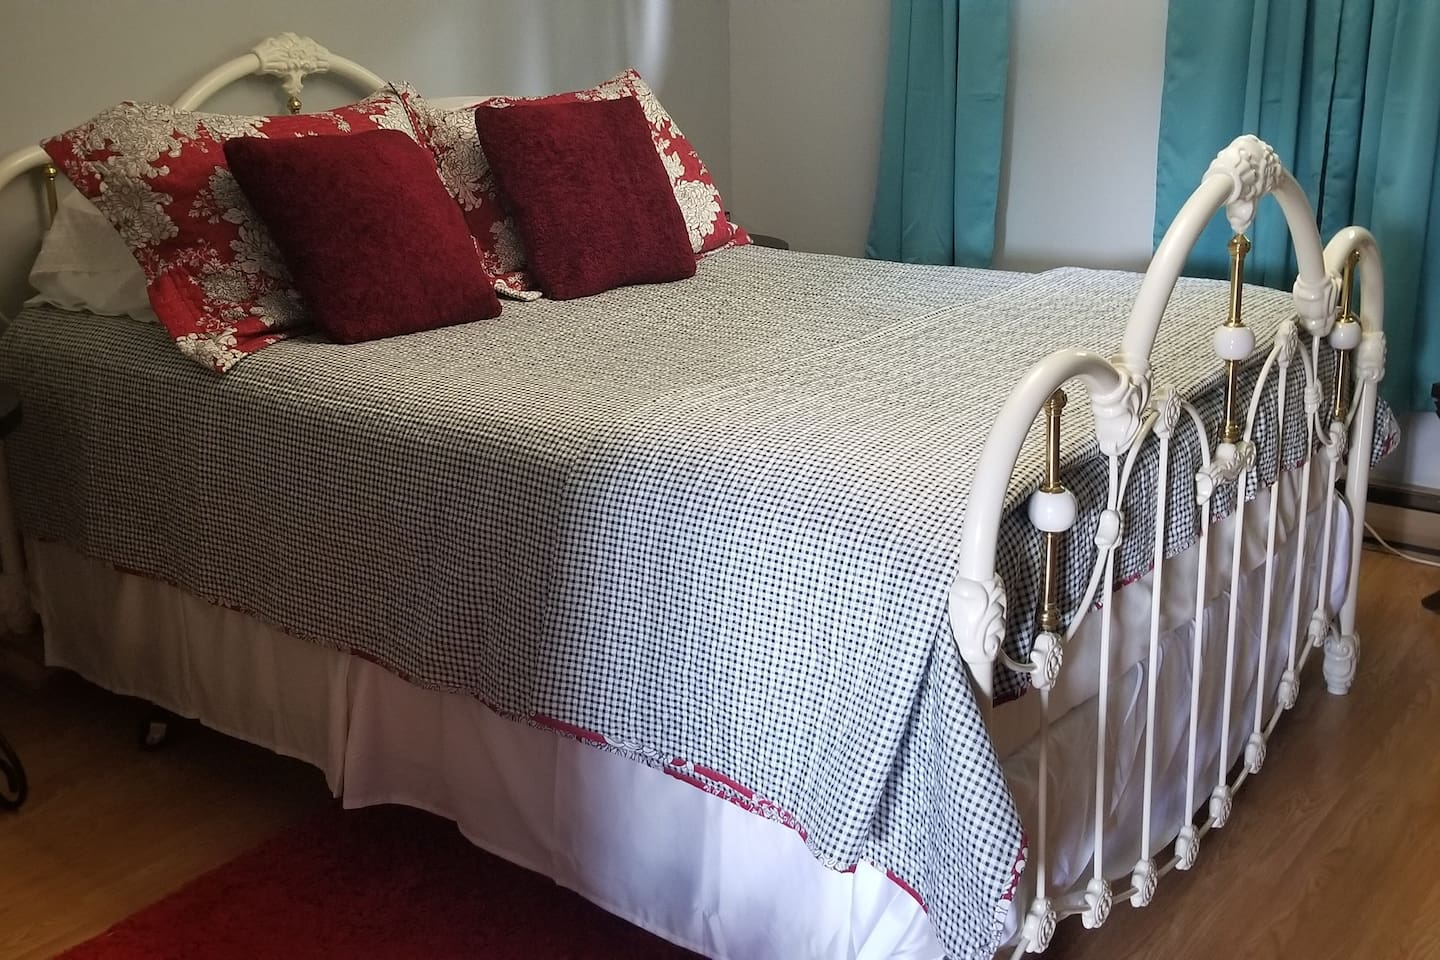 The House That Love Built Bed and Breakfast #2